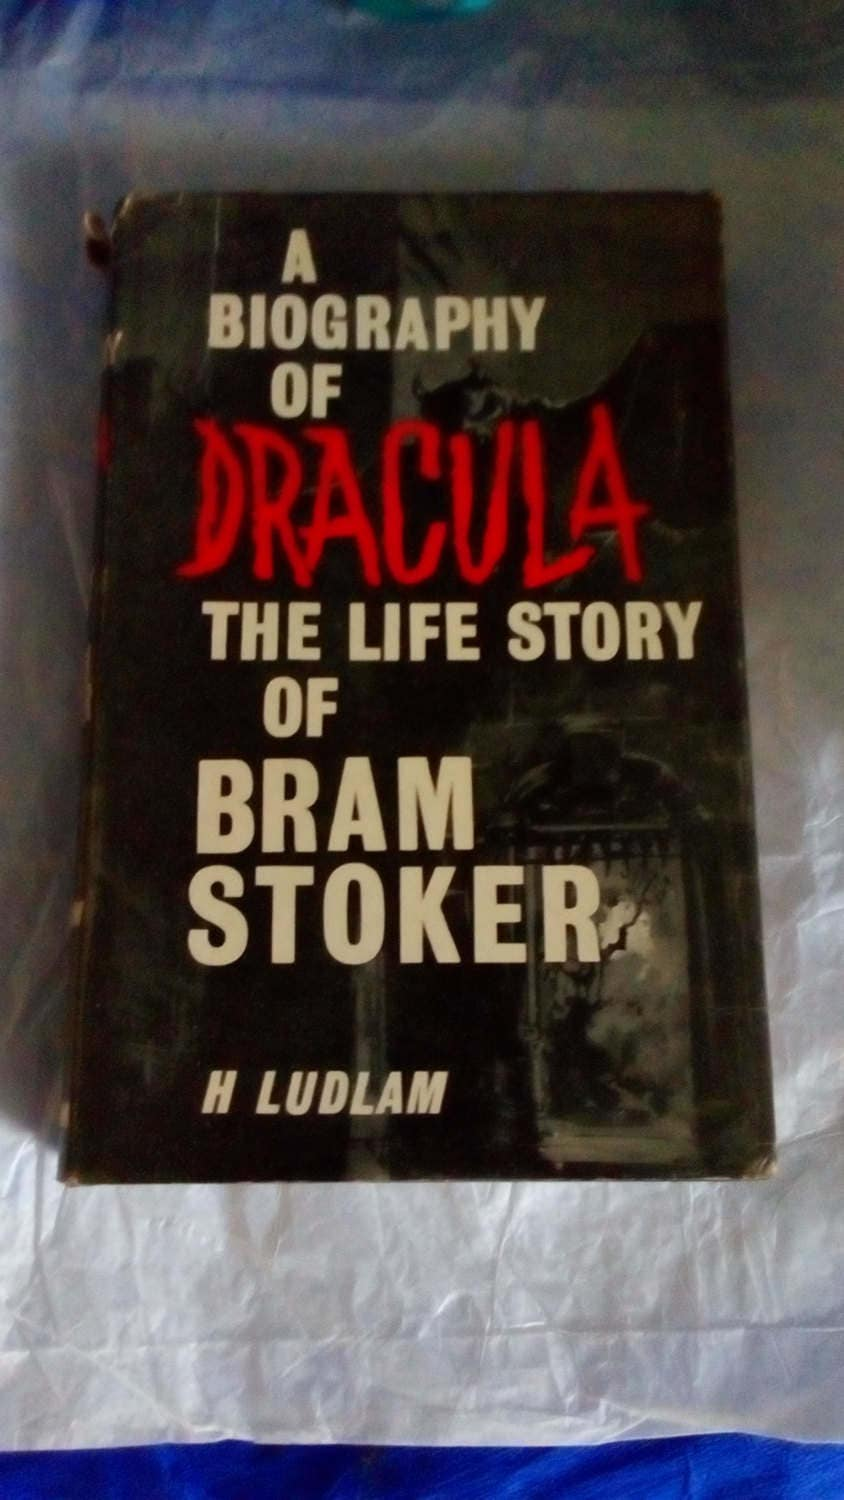 Life Story Magazine Justin Bieber A Personal View 2011 New: A Biography Of Dracula The Life Story Of Bram Stoker By H